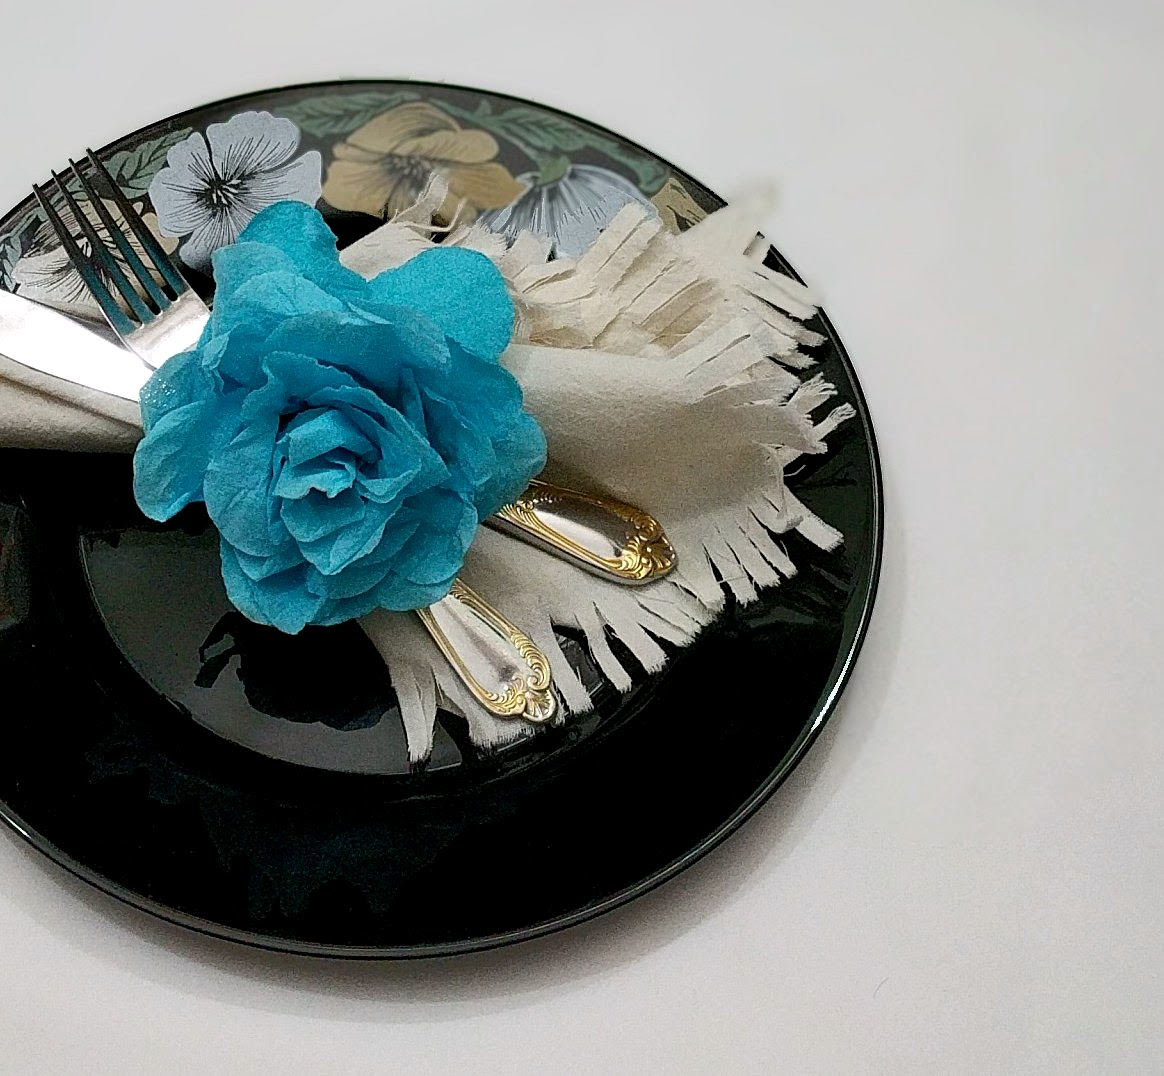 On A Glitter-Free Note - A cotton square fringed at the edges and tied with a blue paper flower, echoes serenity.